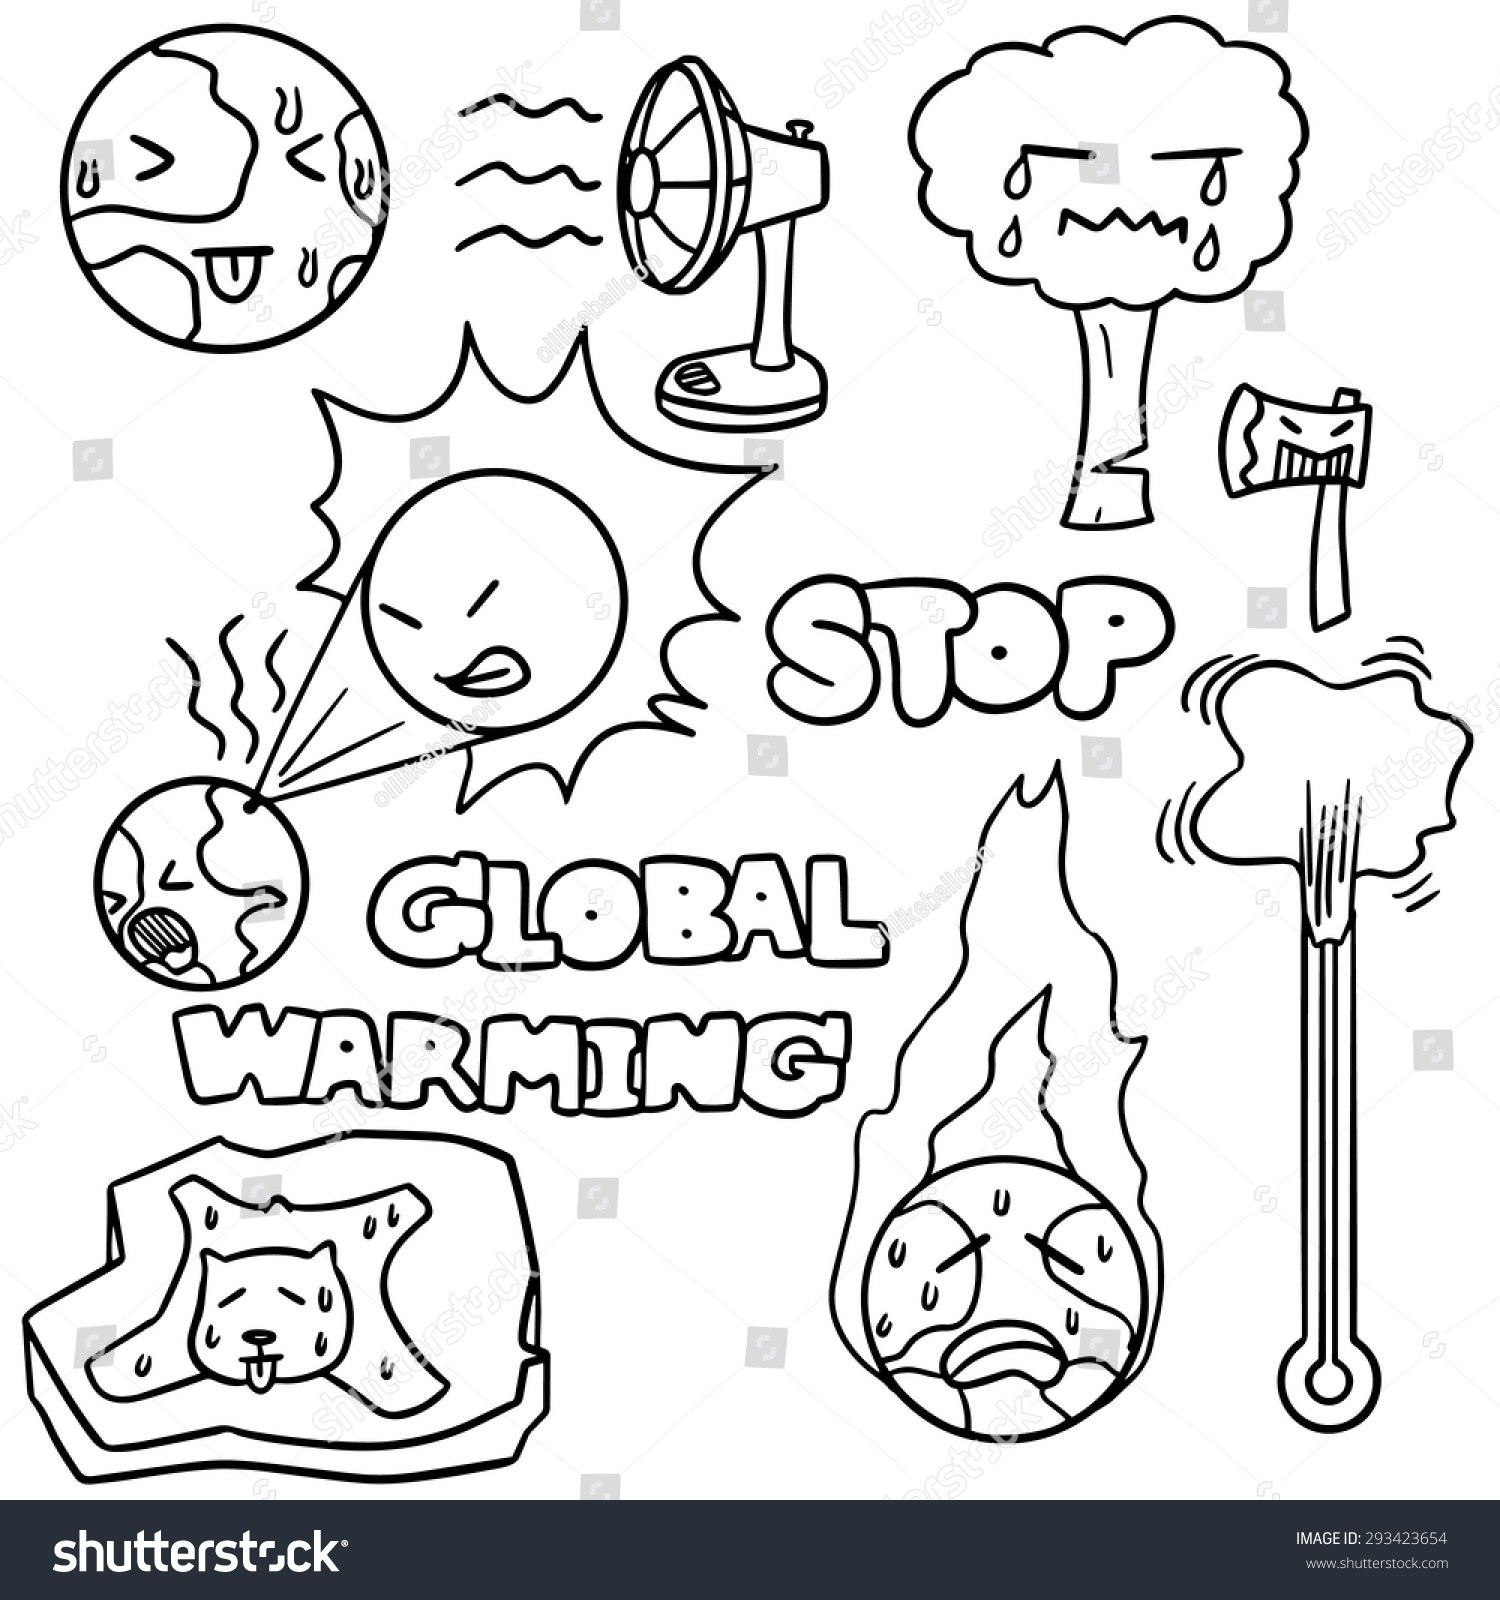 Global warming clipart black and white png royalty free stock Global warming clipart black and white 7 » Clipart Portal png royalty free stock